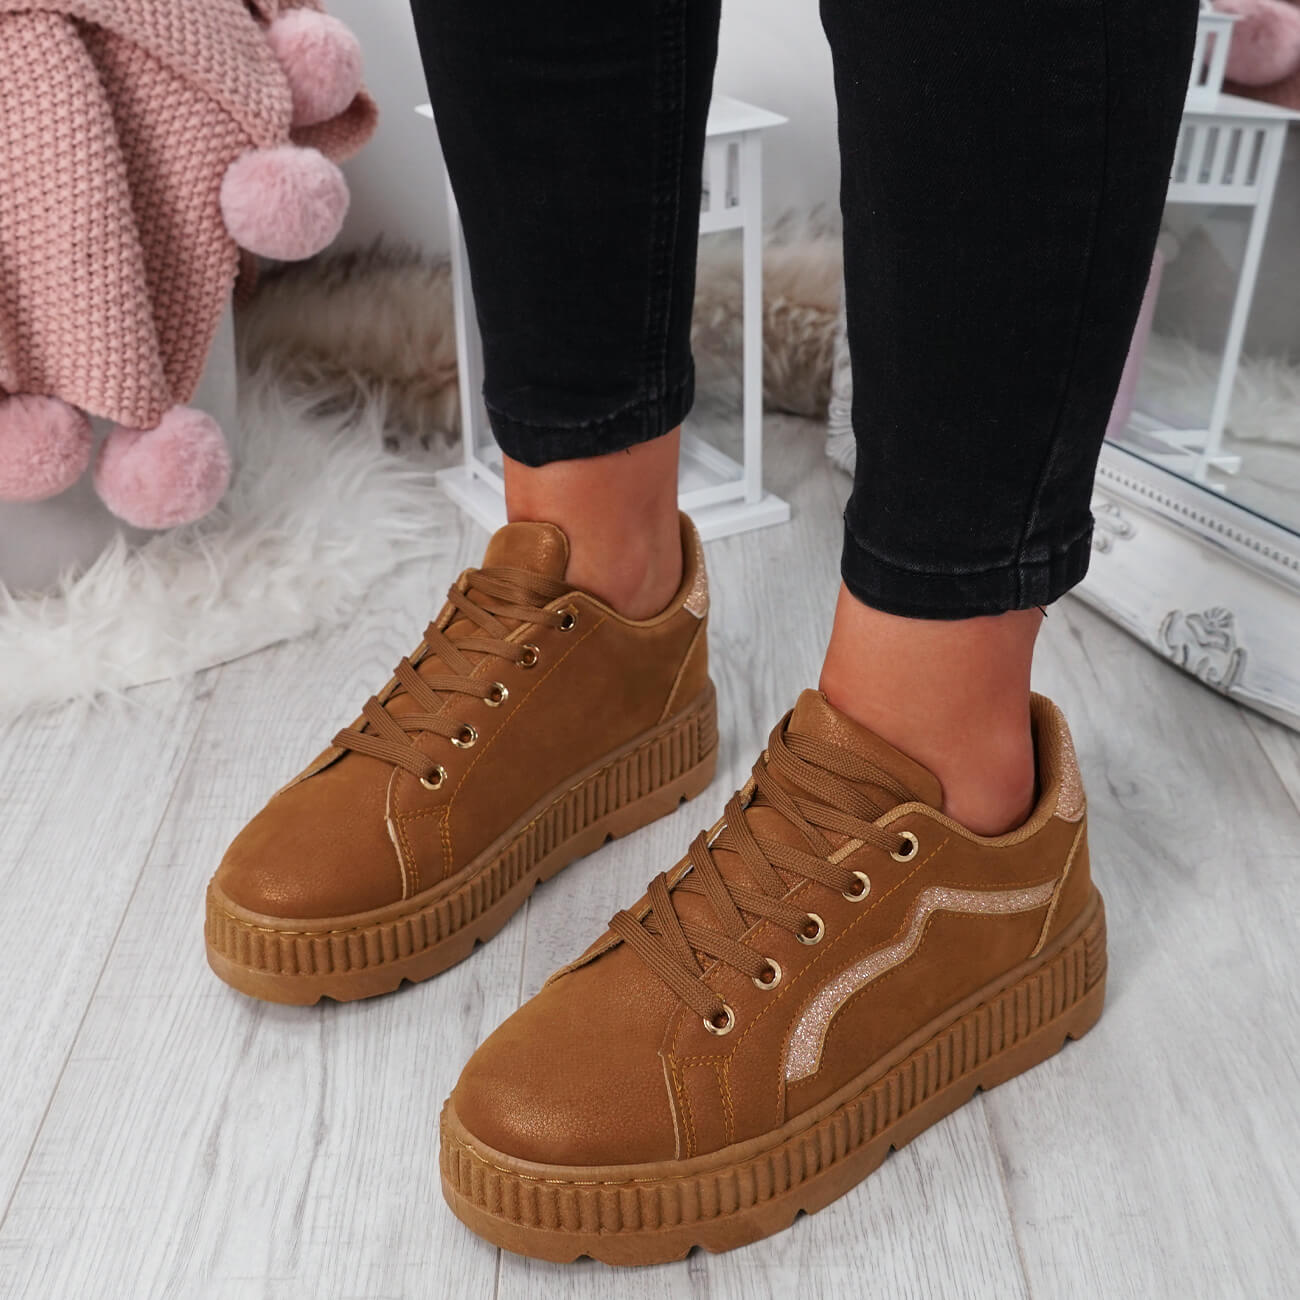 WOMENS-LADIES-LACE-UP-PLATFORM-TRAINERS-PLIMSOLL-SKATE-SNEAKERS-SHOES-SIZE thumbnail 12